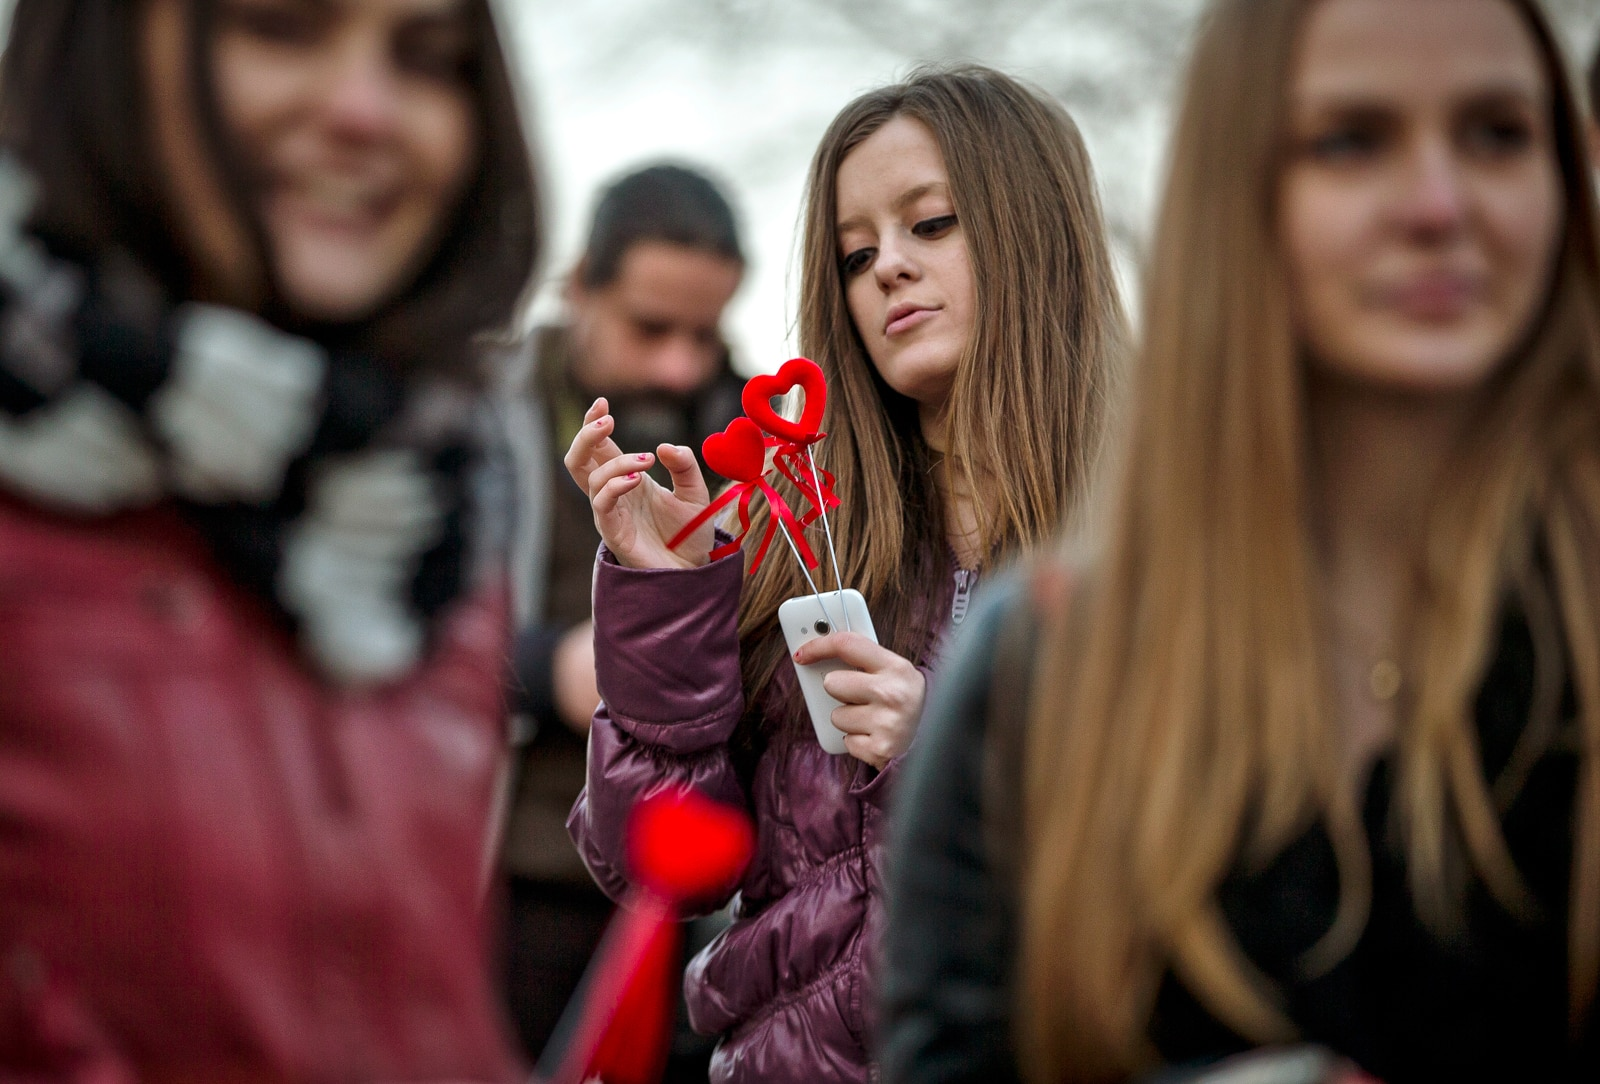 Girl looking at red heart shapes attached to smartphone with people around her (© AP Images)